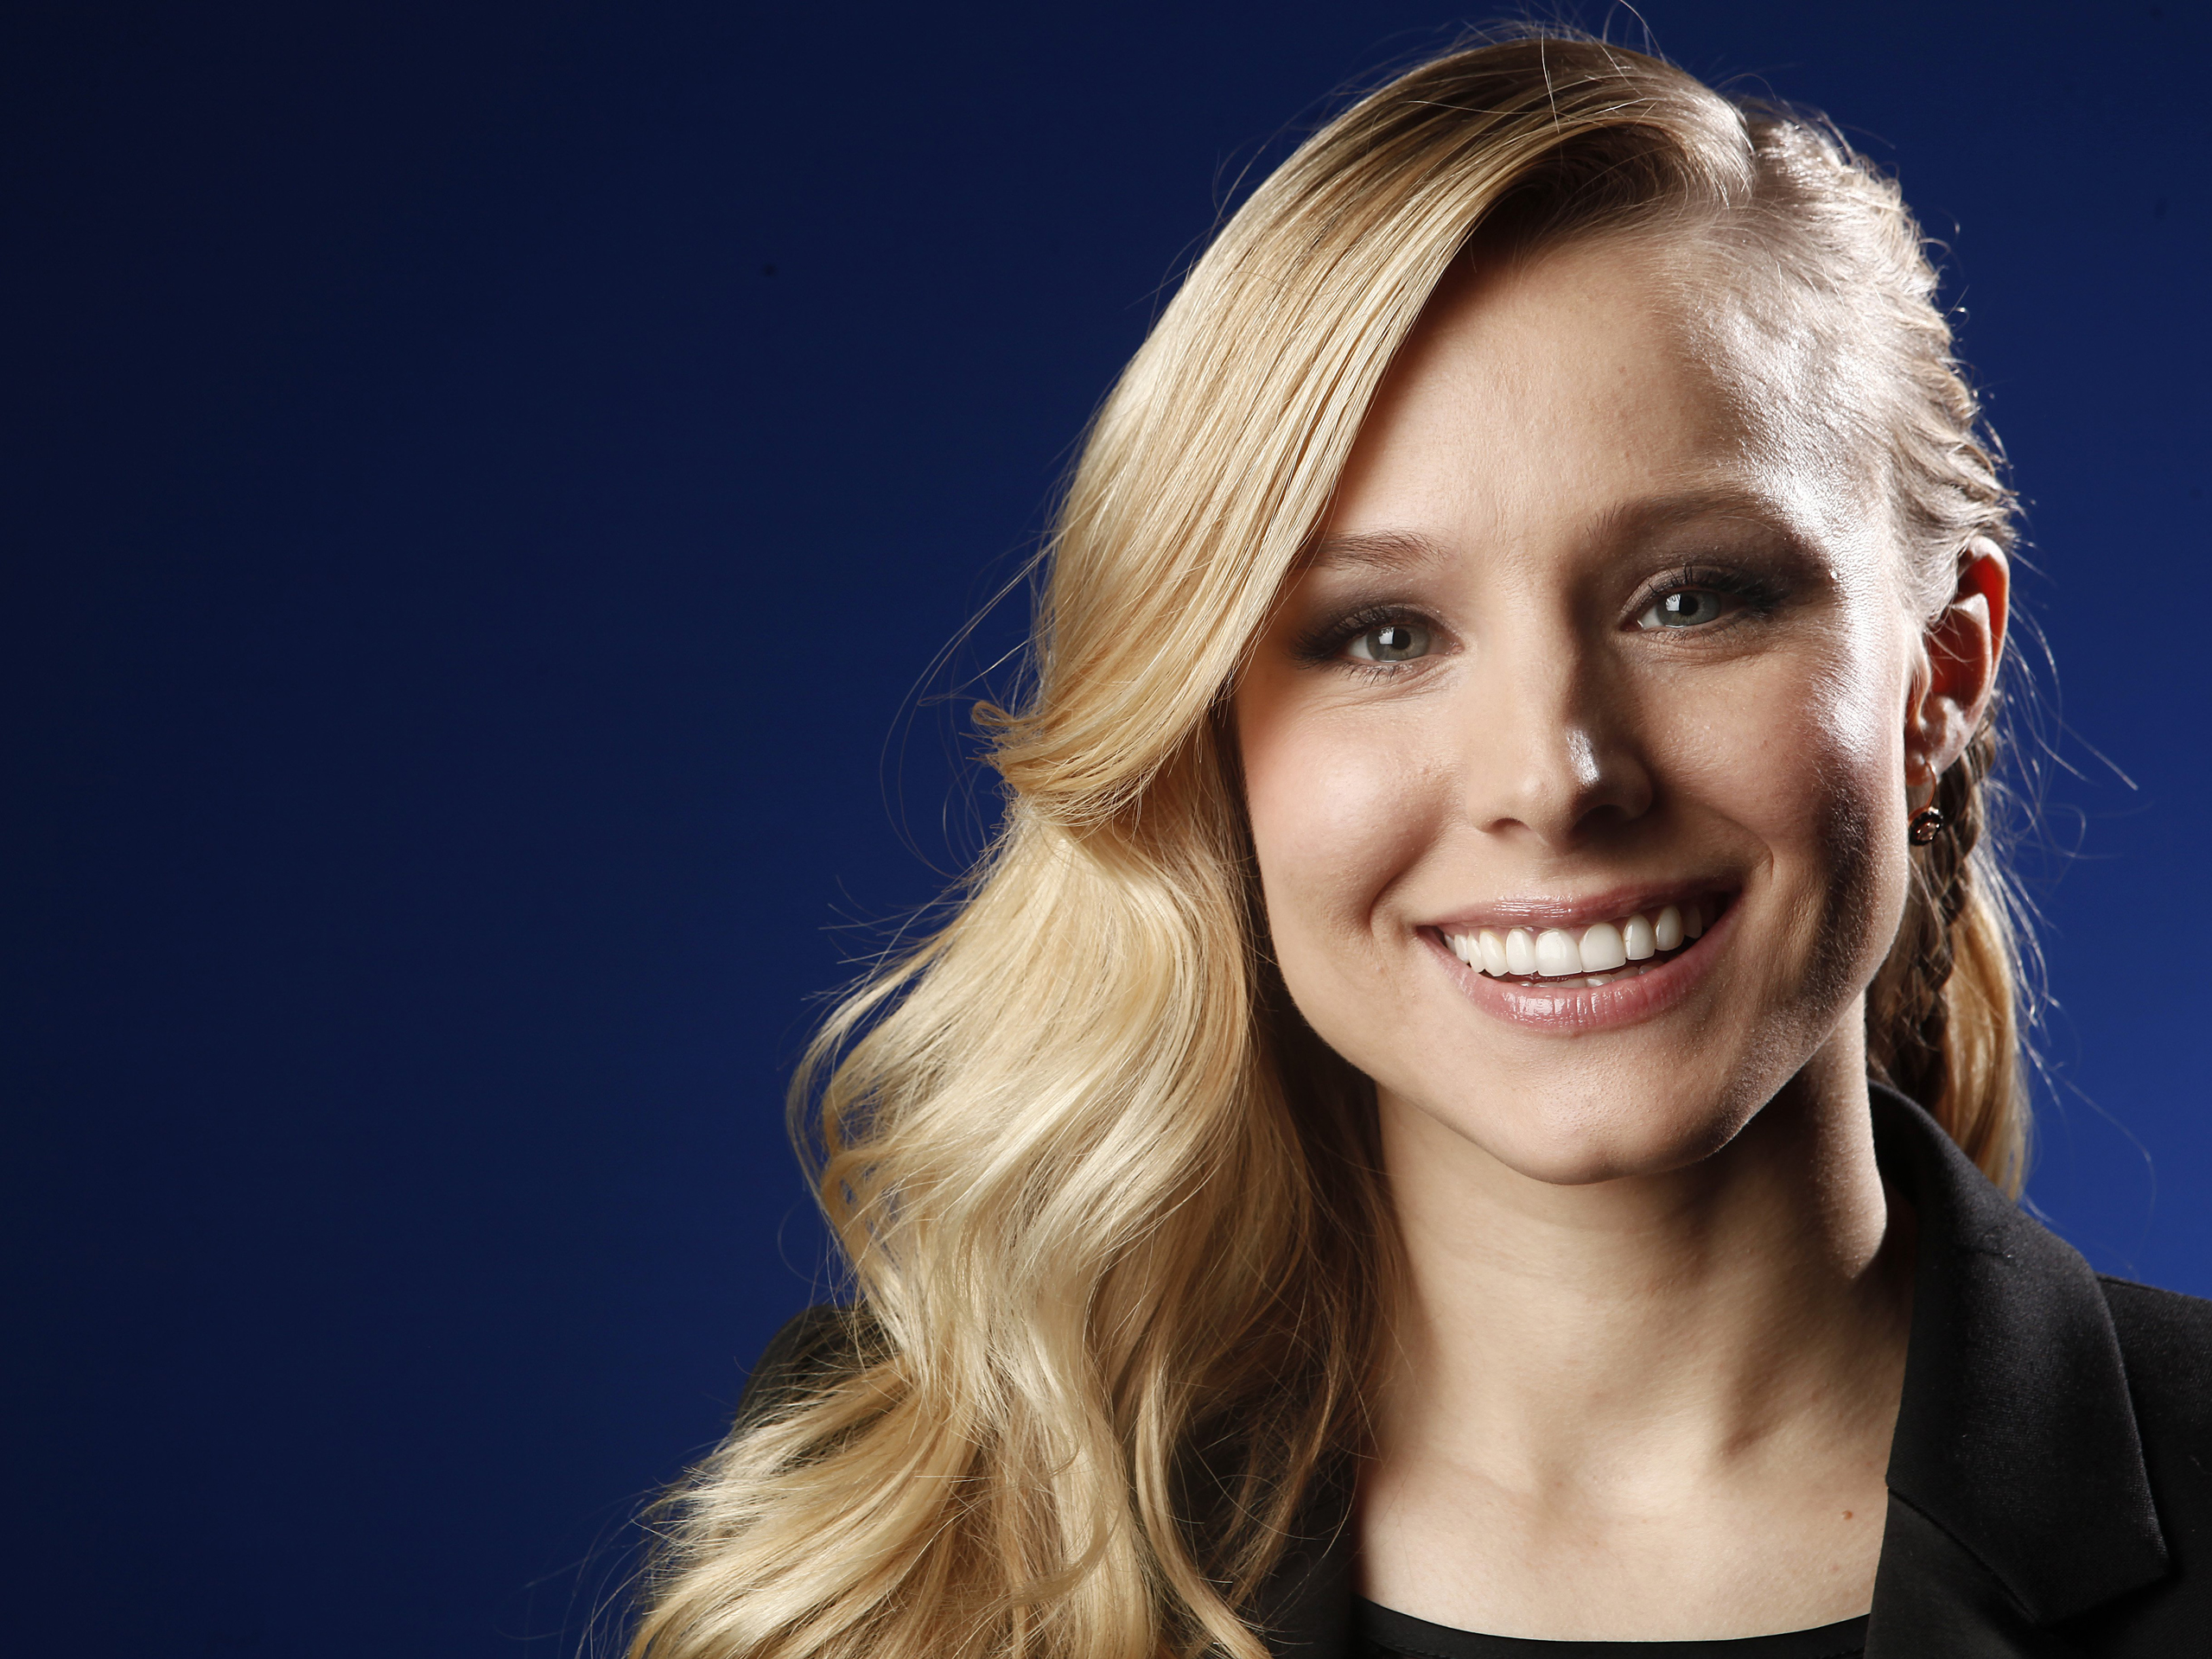 kristen bell smile wallpaper 51205